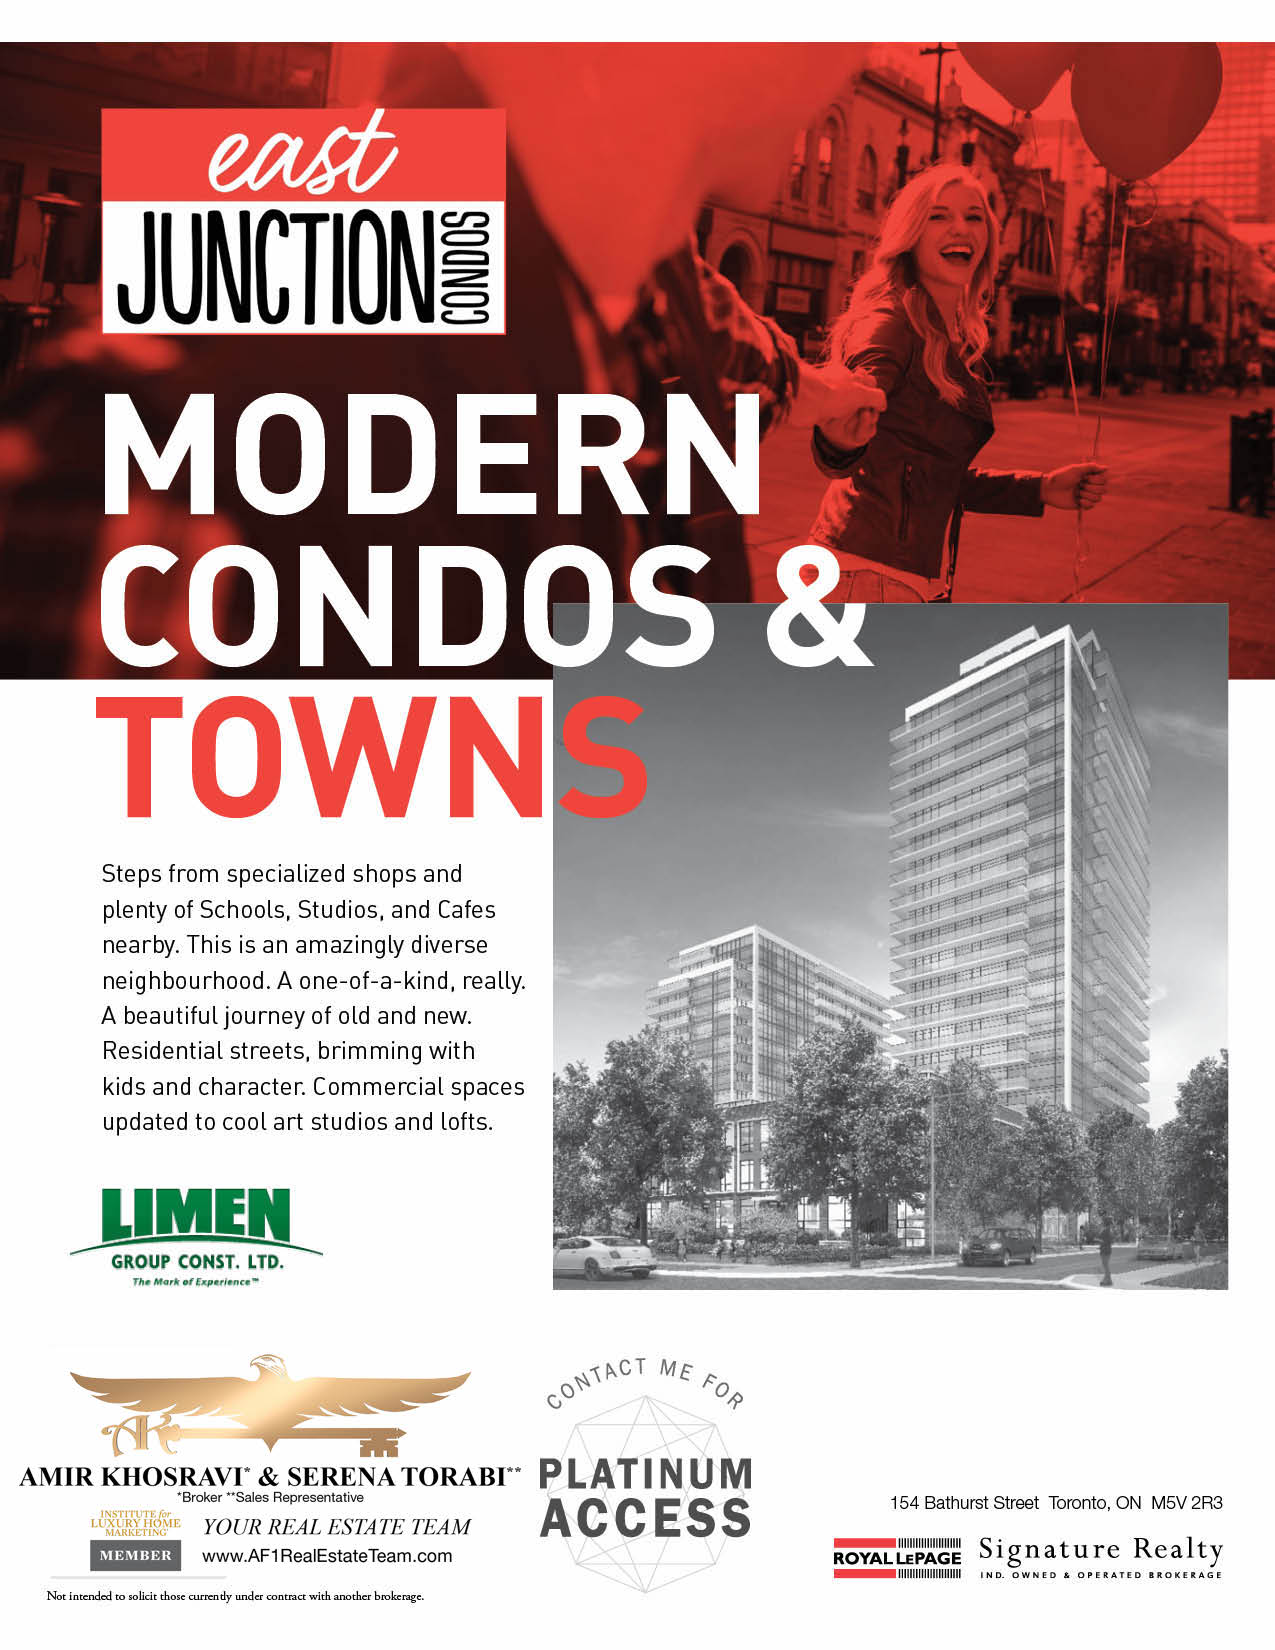 East Junction Condos